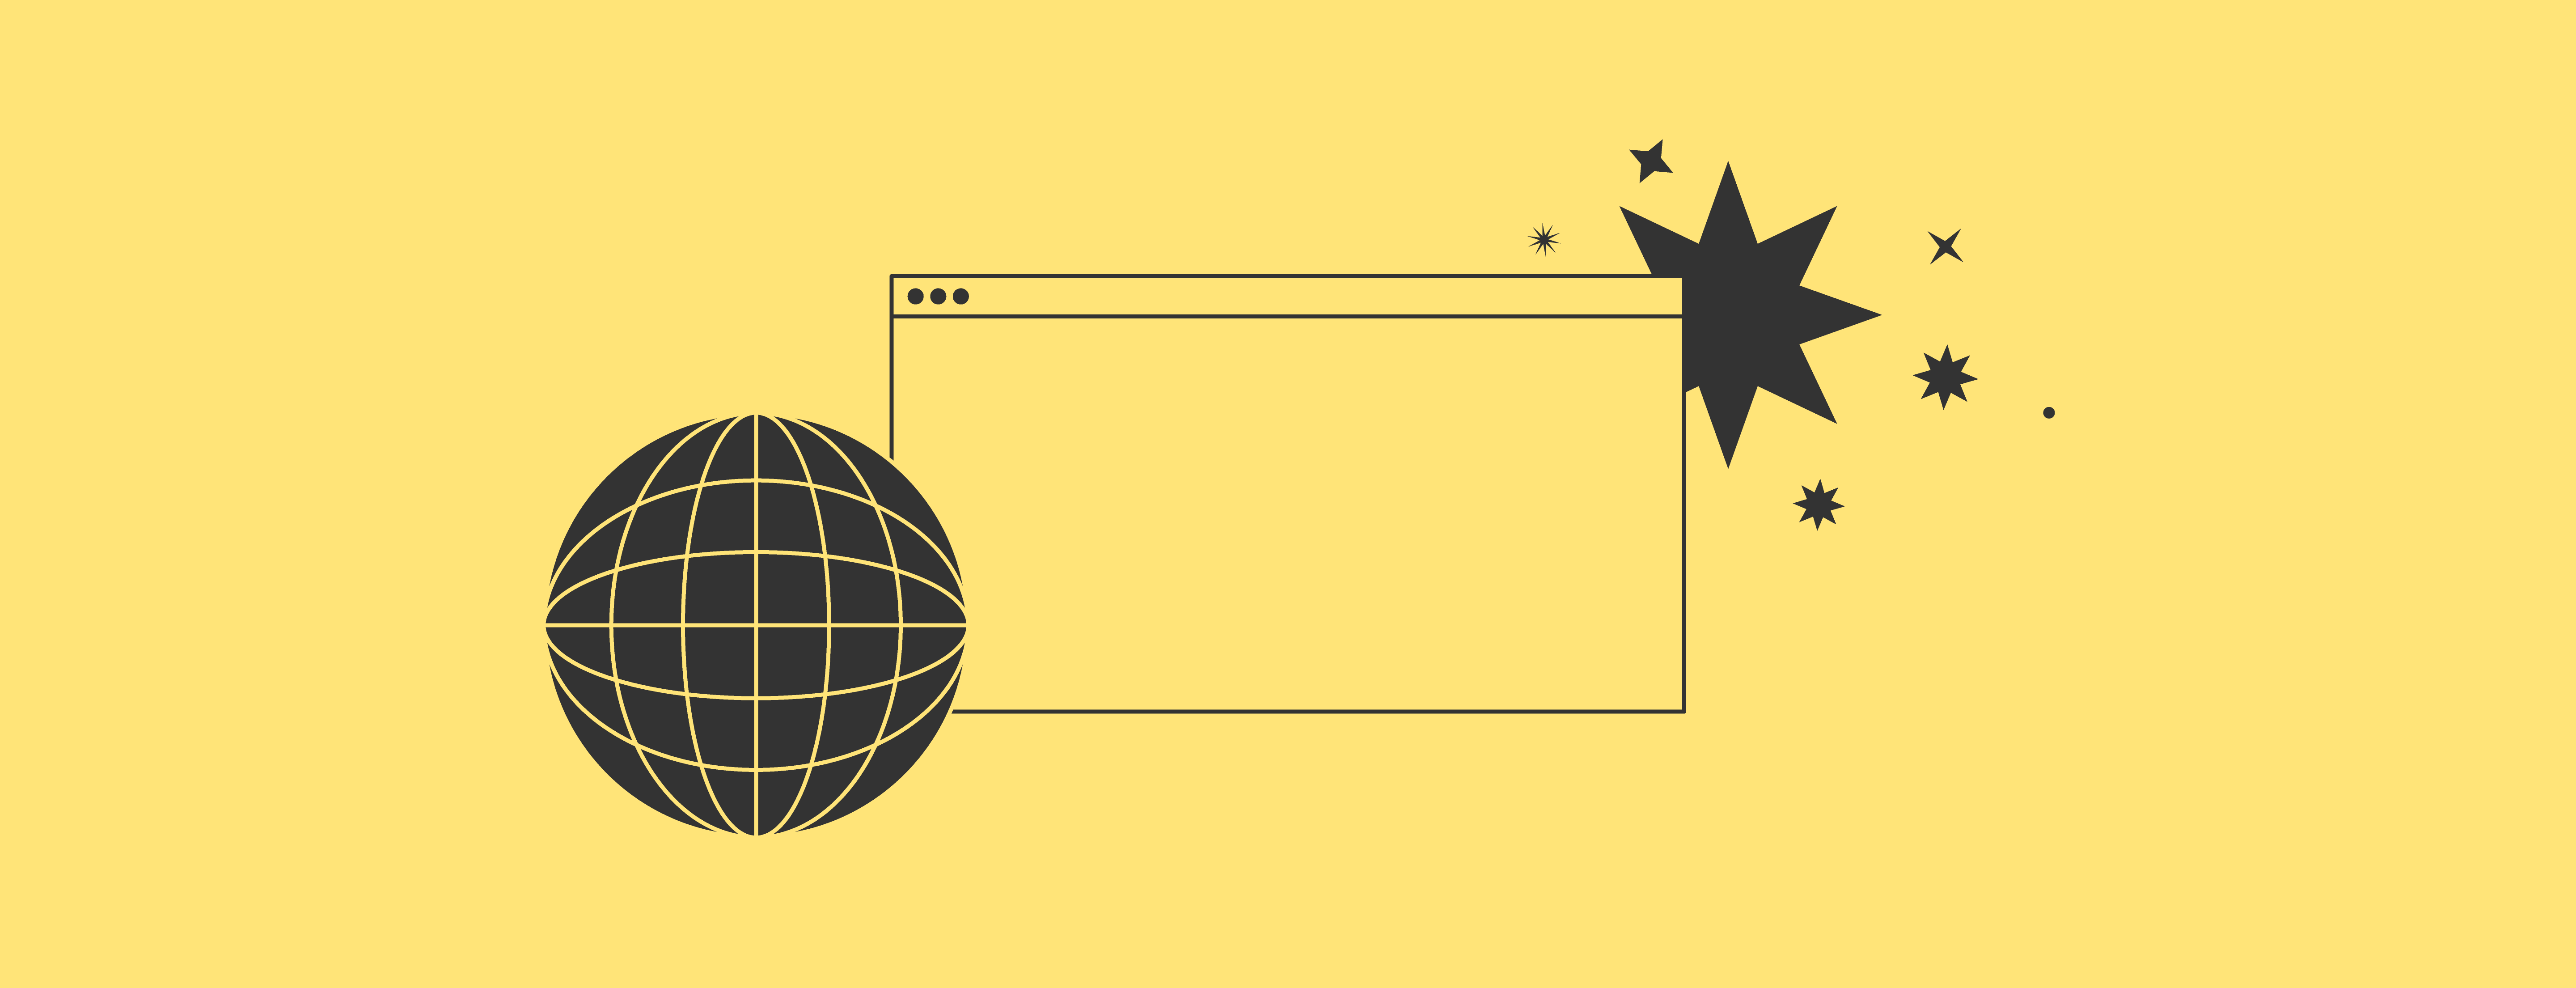 Your website shouldn't just look sleek, it should fulfil a need or perform a function. Here are 7 key factors to improve your website beyond the design.